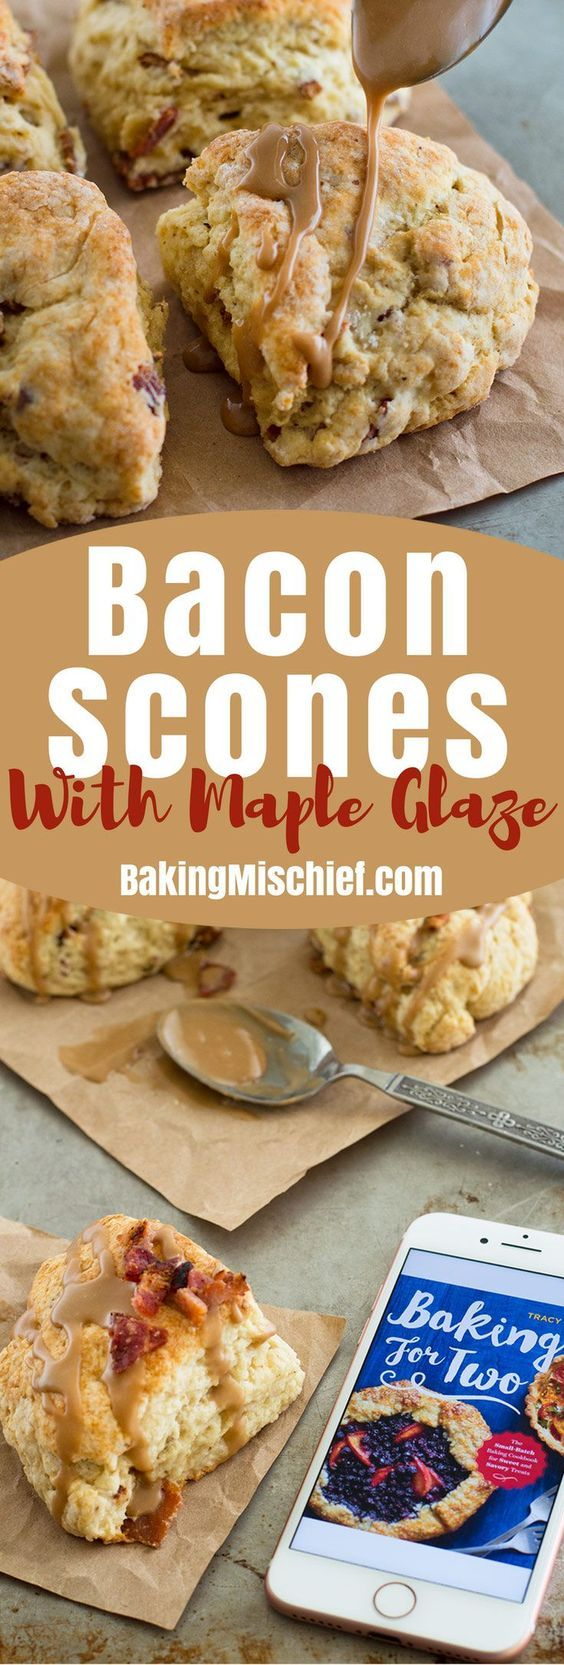 These small-batch Bacon Scones with Maple Glaze are one of my favorite recipes from my new cookbook, Baking for Two! Recipe includes nutritional information. From http://BakingMischief.com